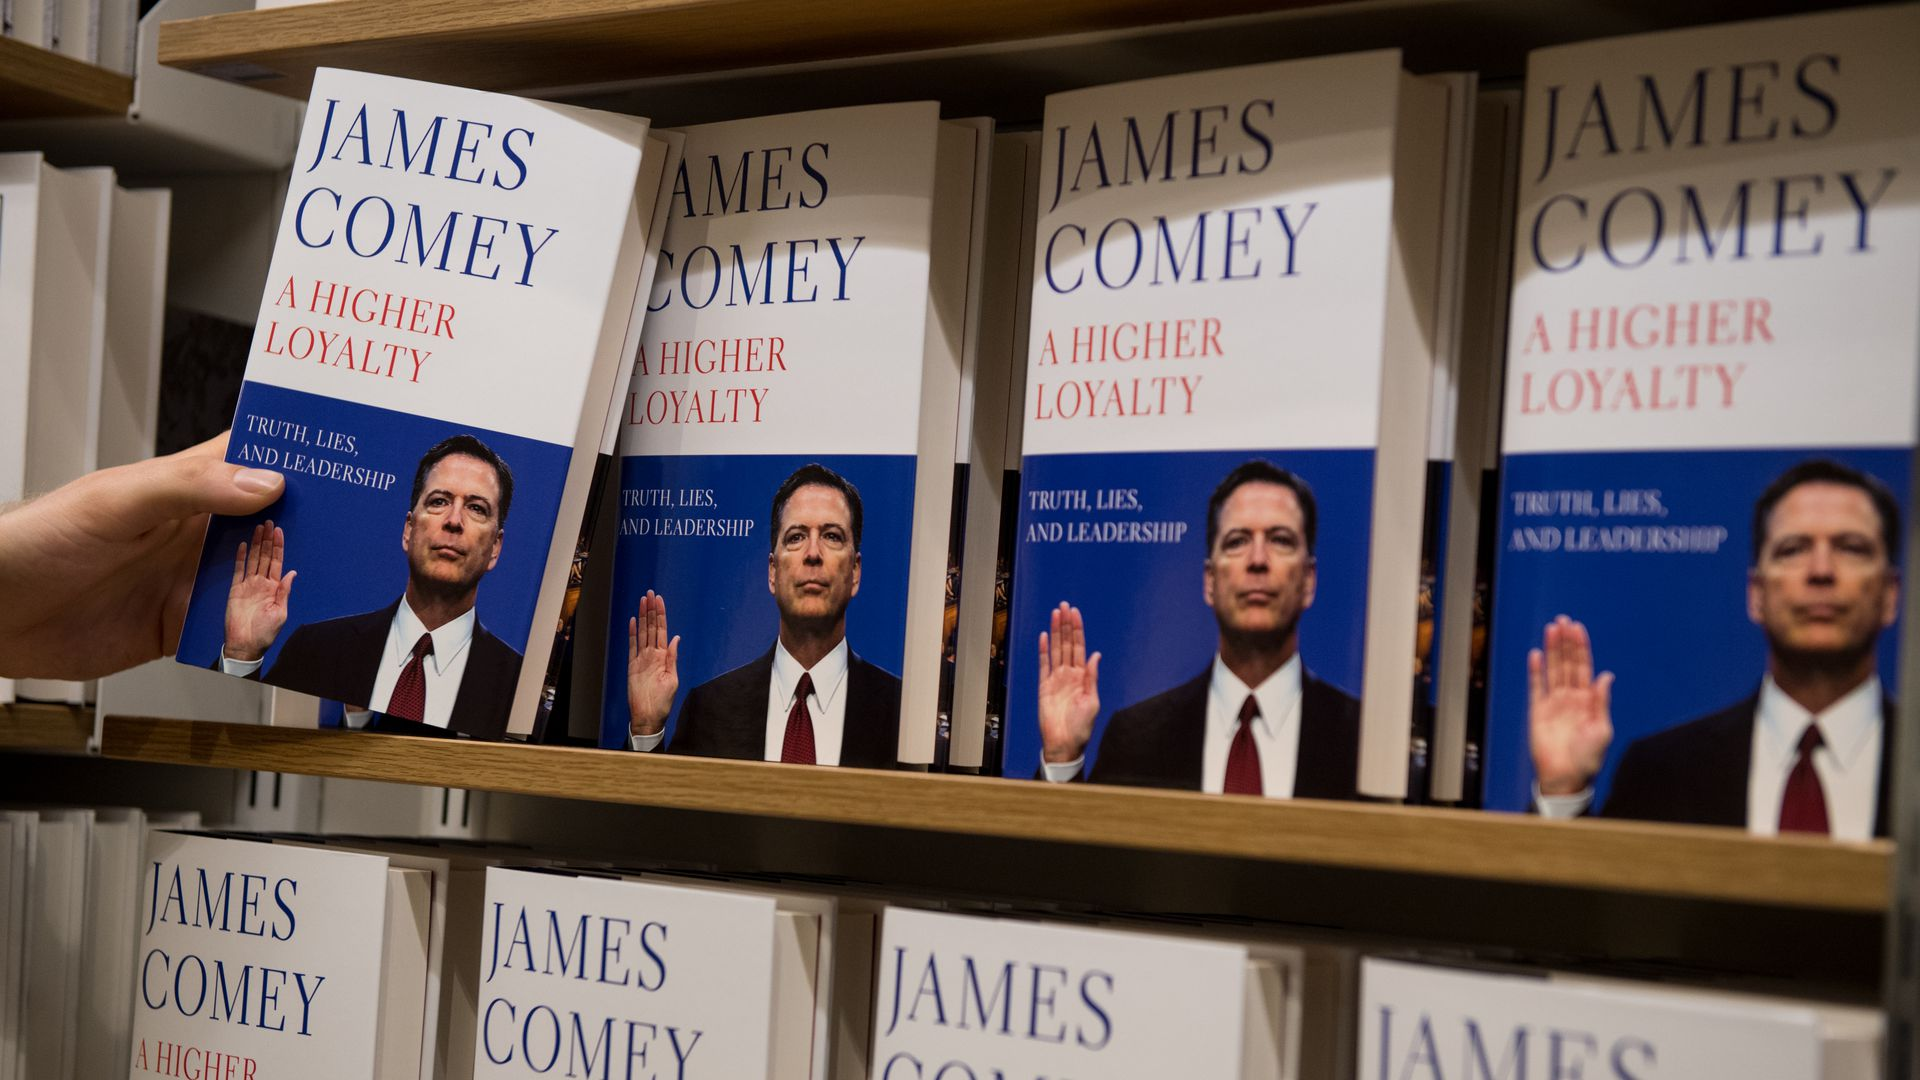 A customer reaches for Comey's book in a store